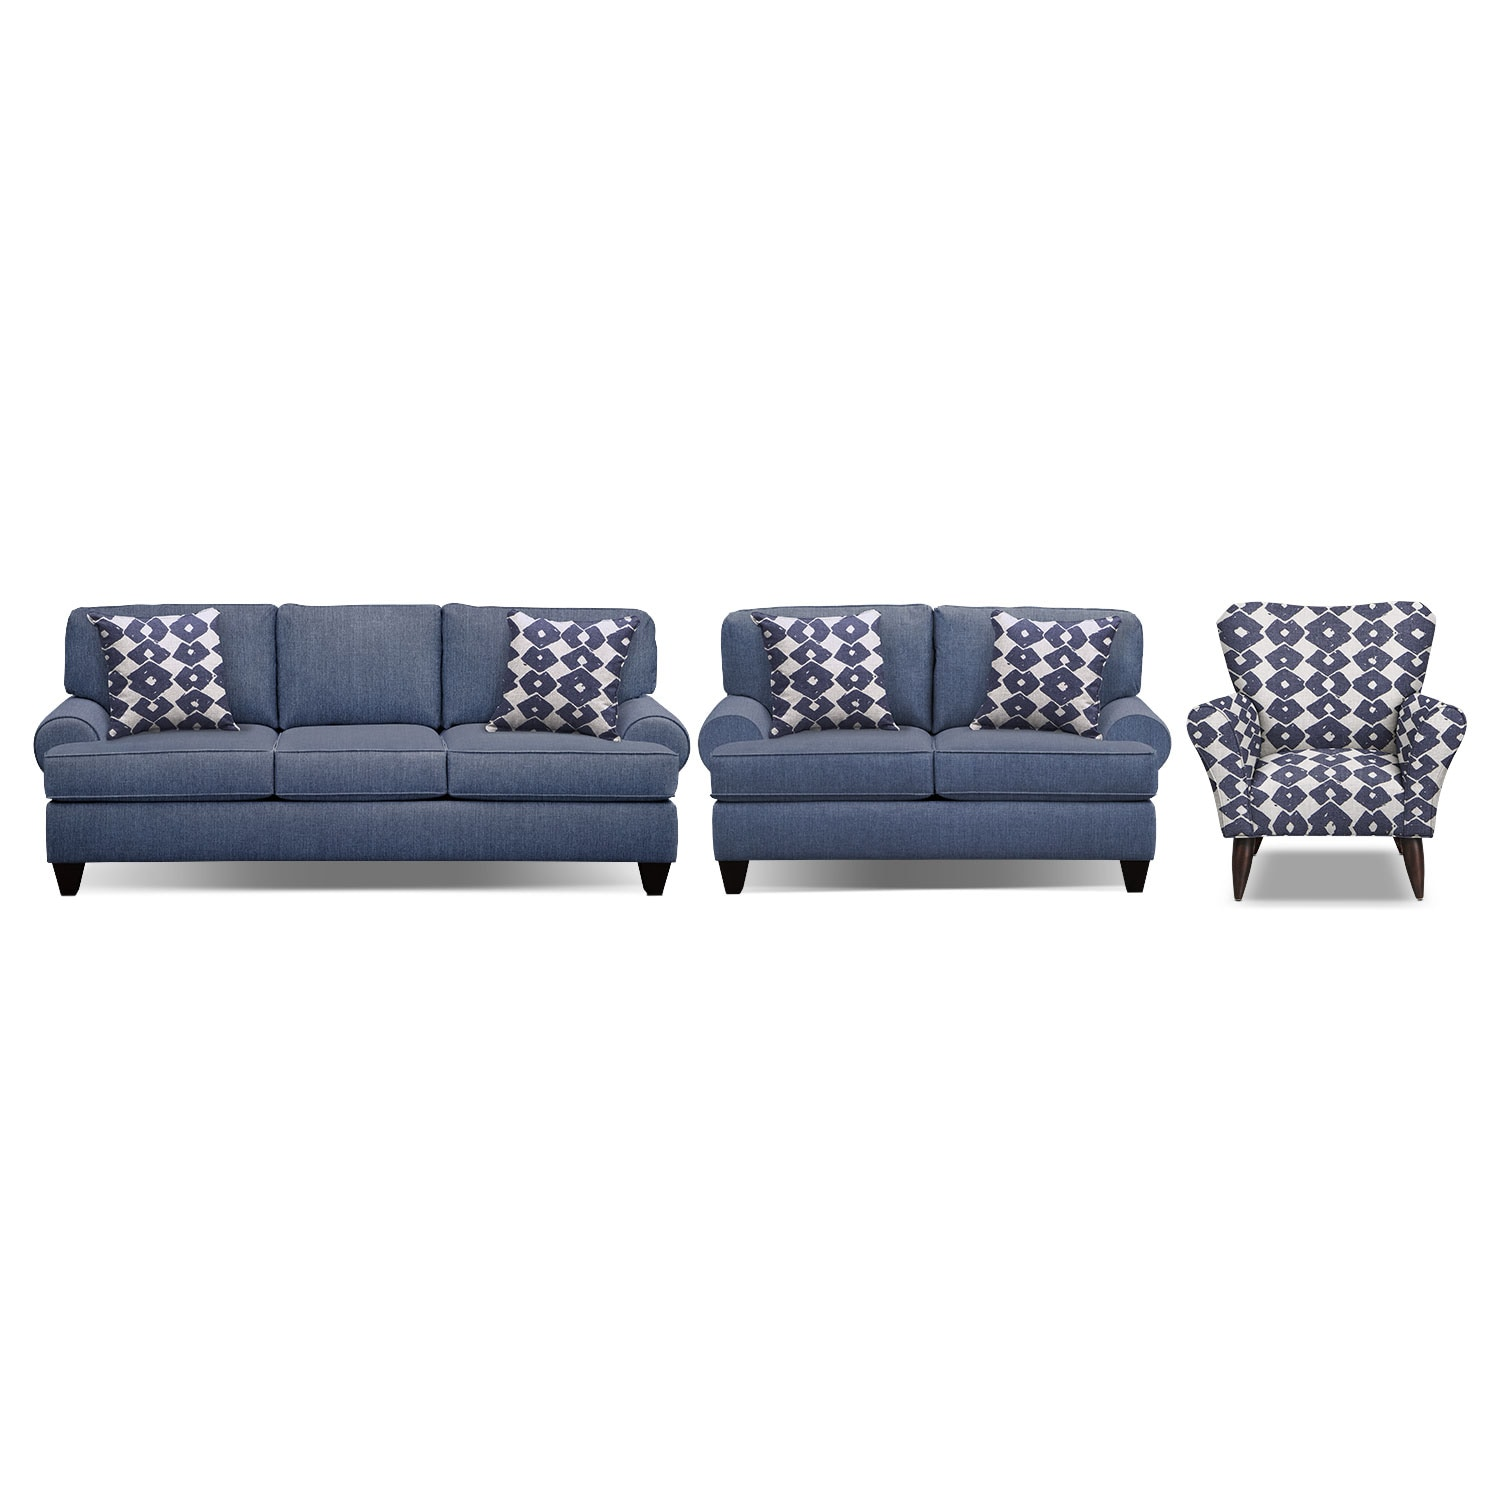 accent sofa calligaris bailey blue 91 sleeper 67 and chair set by kroehler